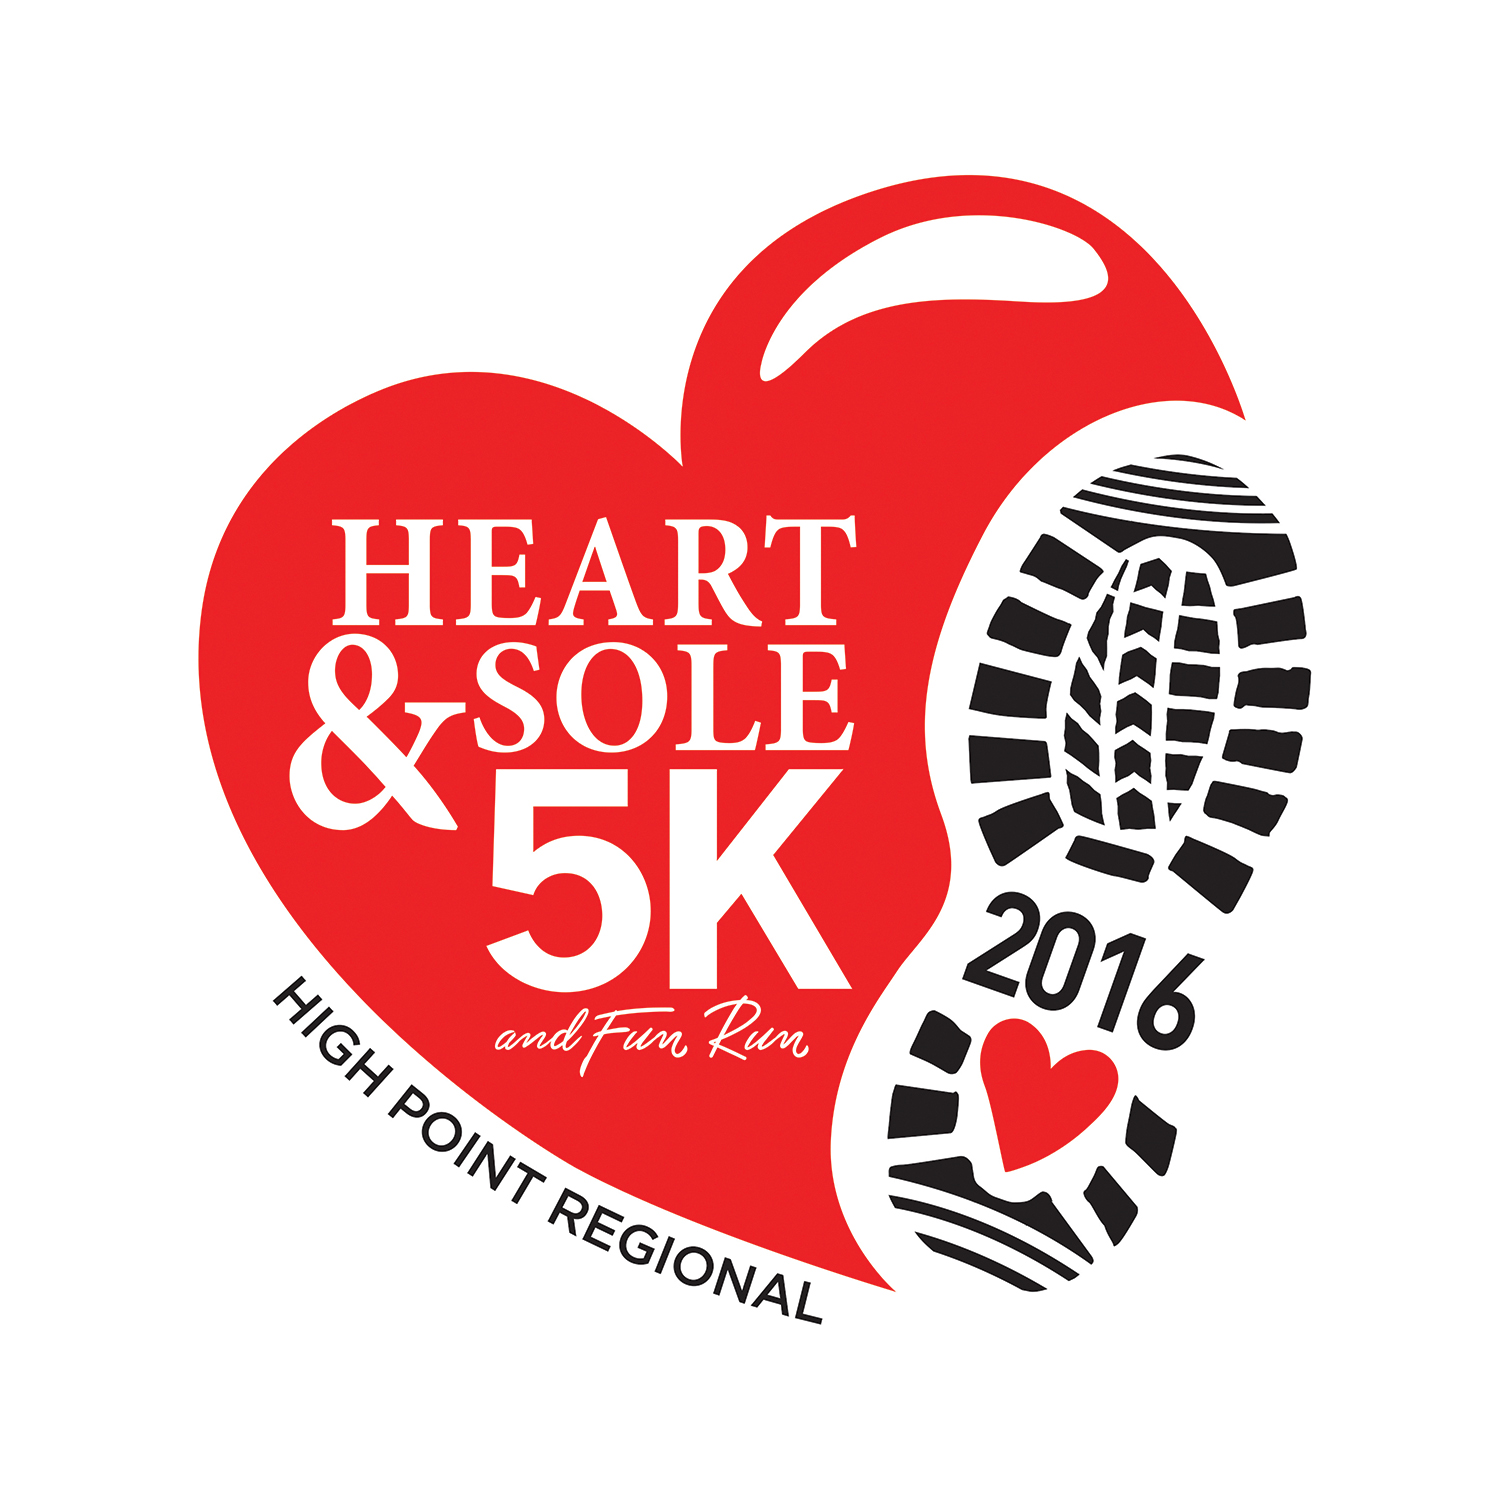 HeartandSole5K logo